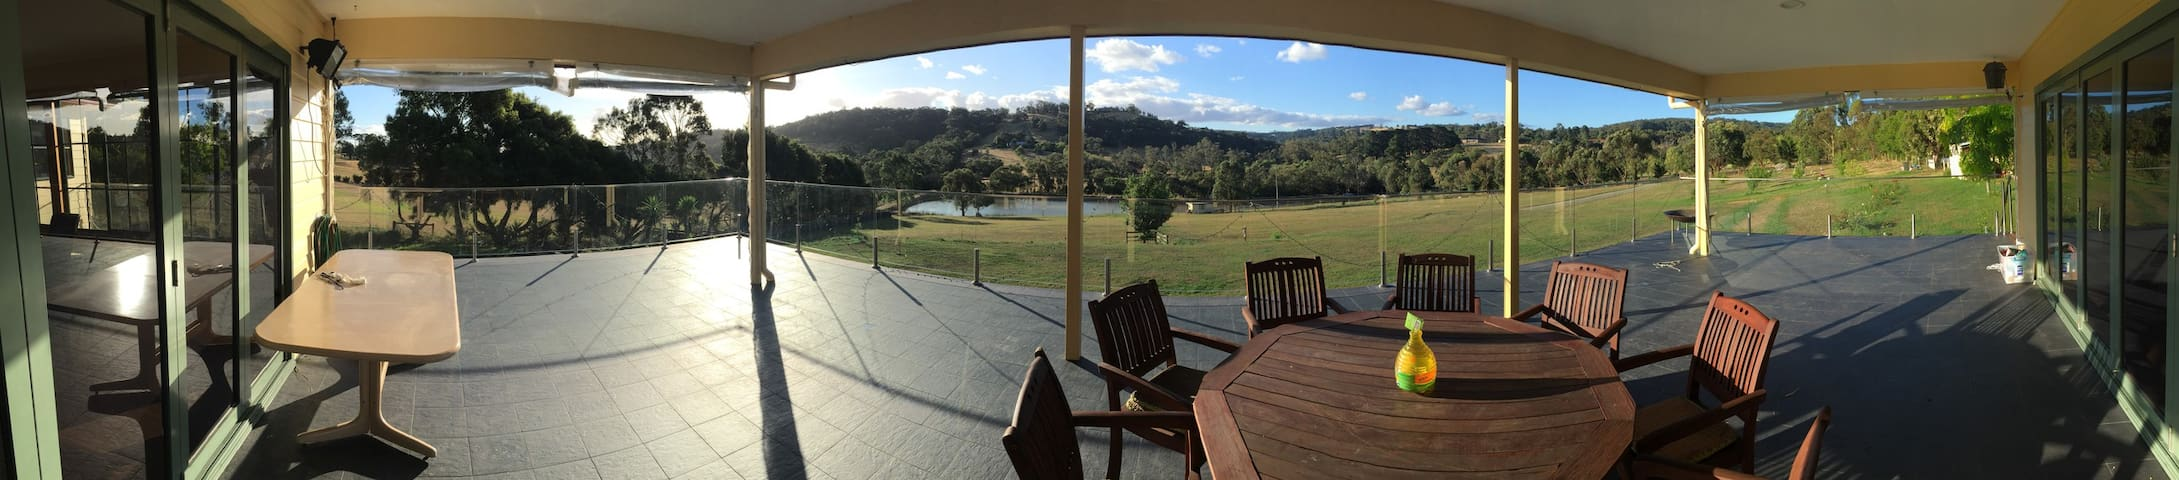 Peaceful farm stay with gorgeous views - Pakenham